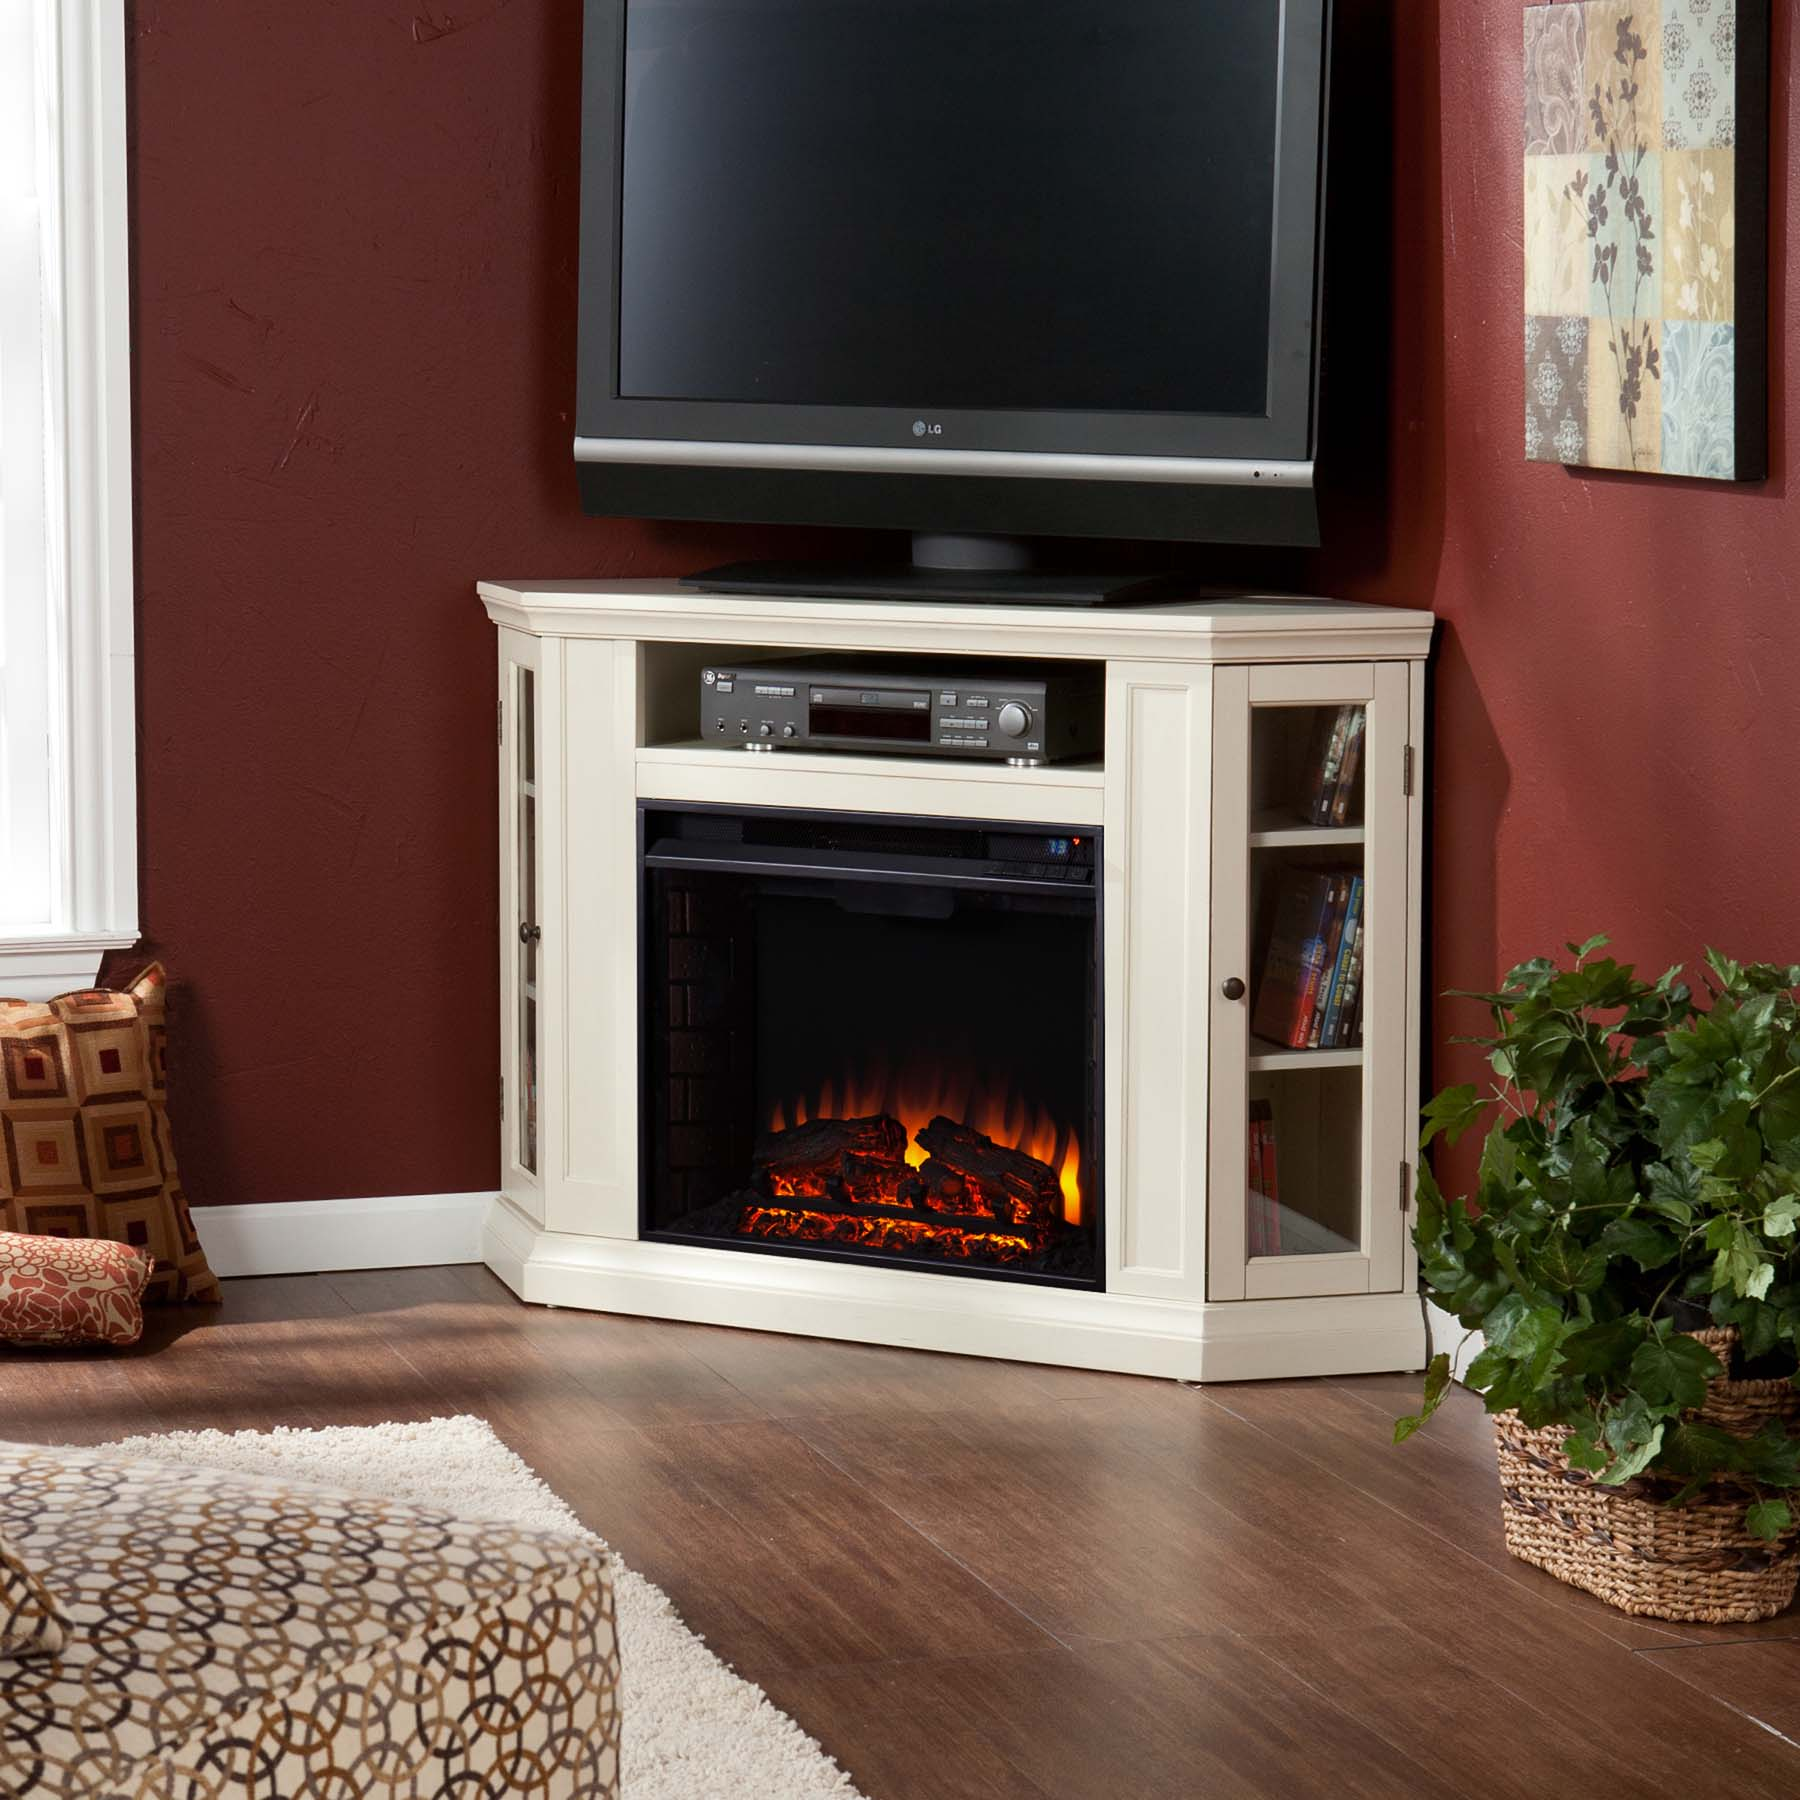 "The 48"" Claremont Convertible Media Electric Fireplace - Ivory - FE9314 accommodates any entertainment enthusiast."